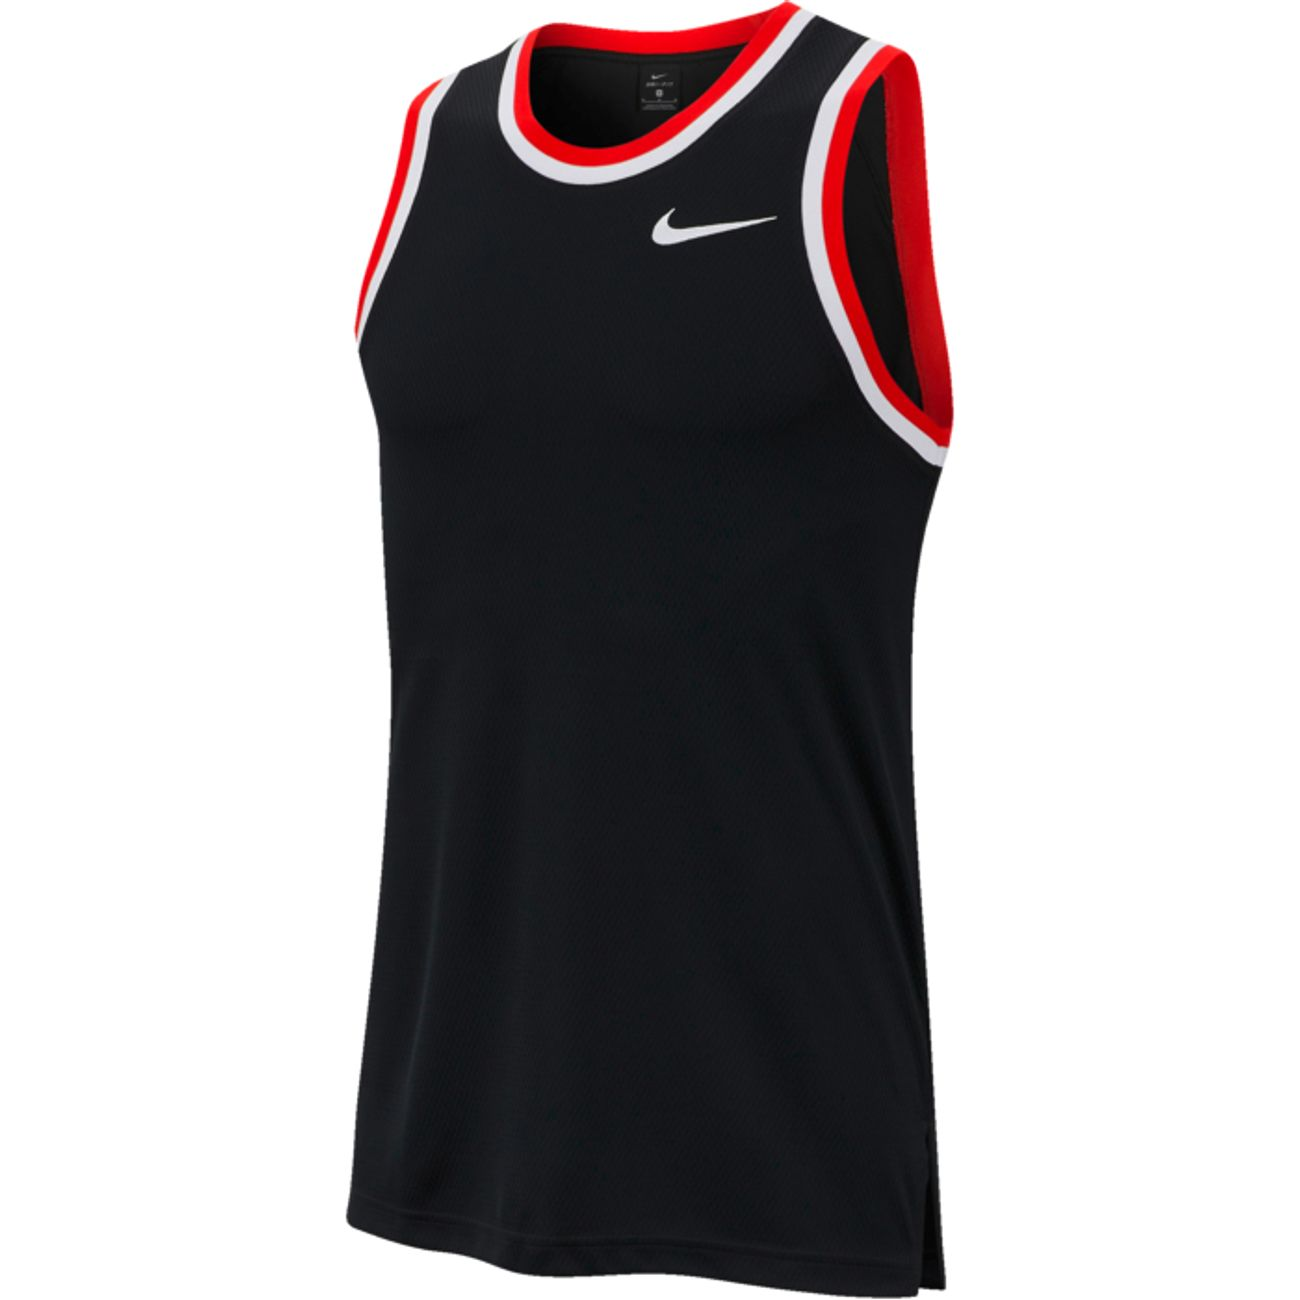 2304f36bc3cf2 MAILLOT Basketball homme NIKE MAILLOT ENTRAINEMENT homme NIKE DRY CLASSIC  JERSEY